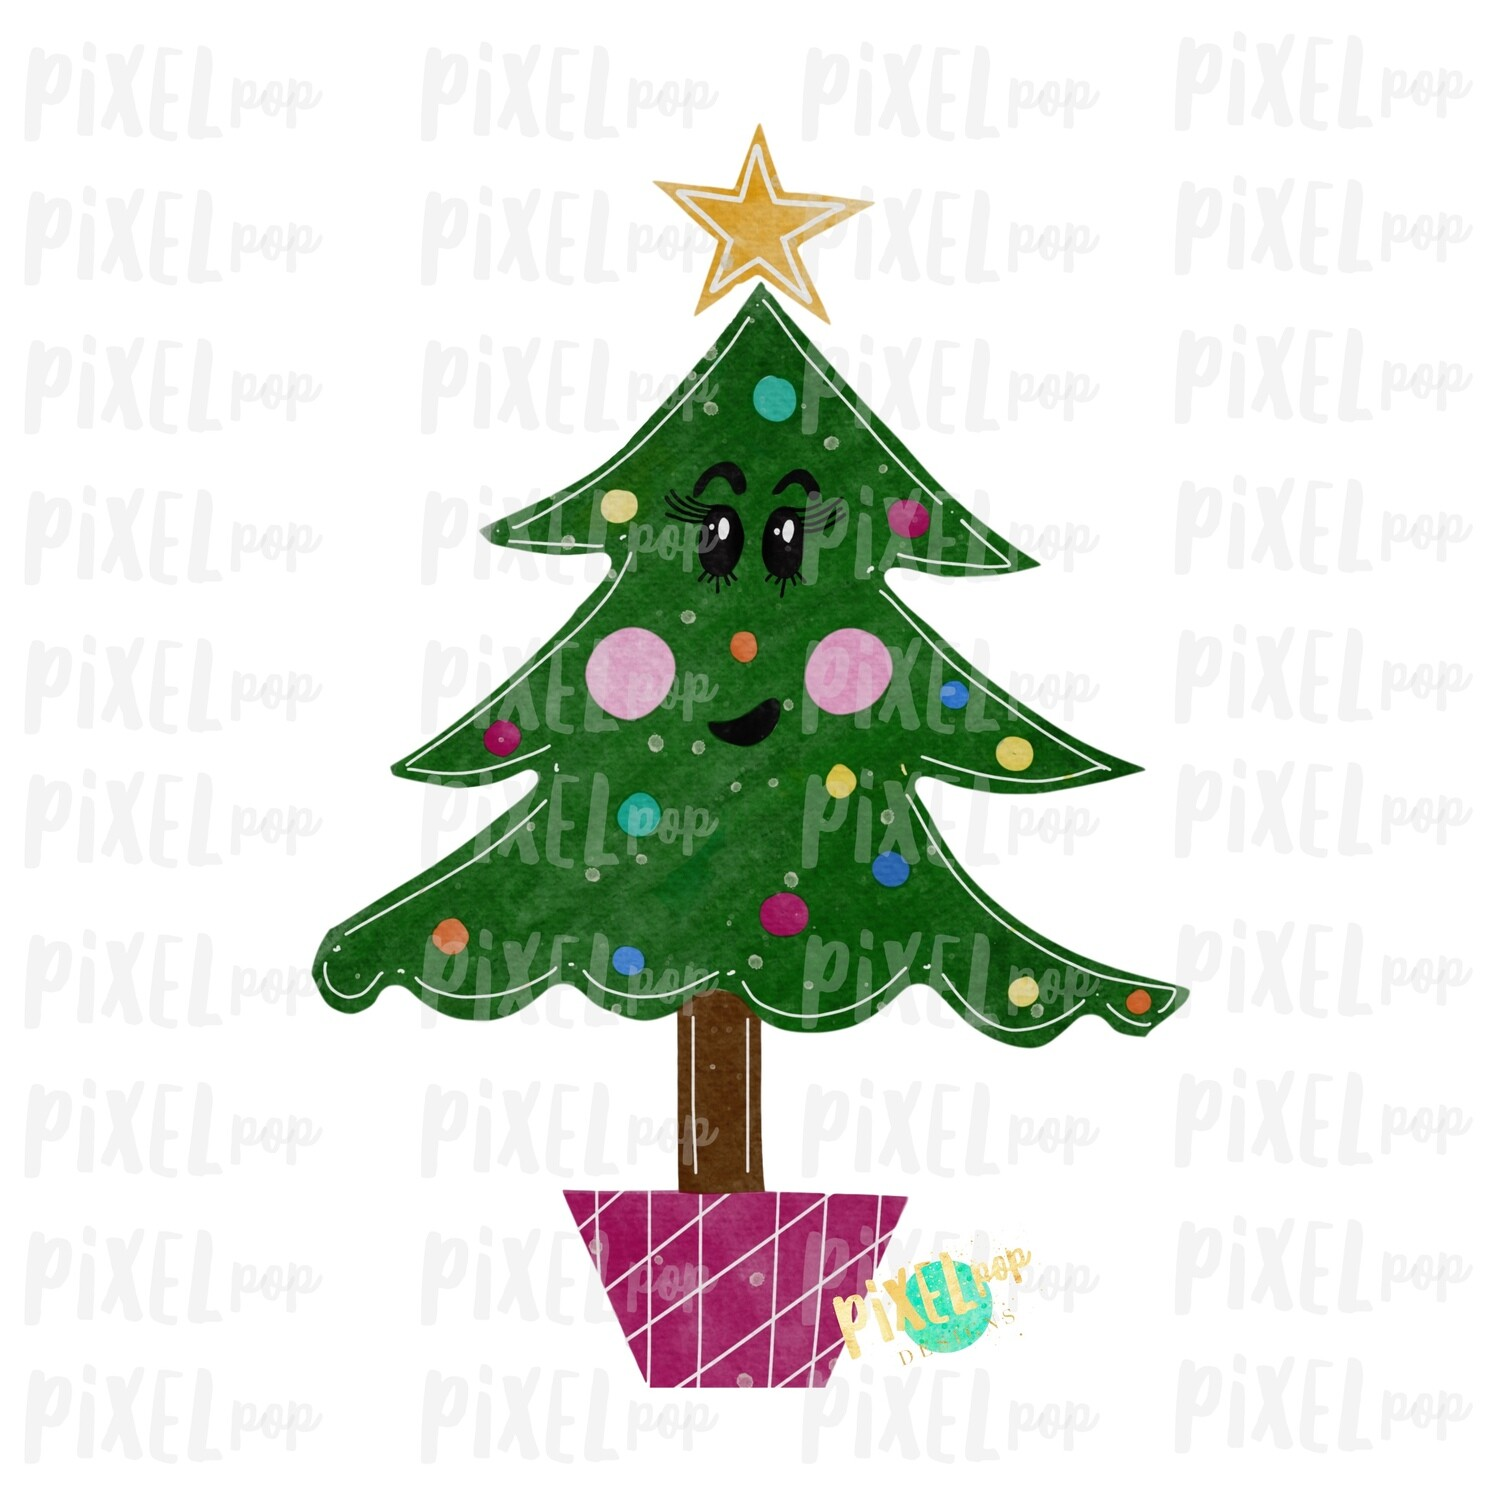 Sassy Cartoon Christmas Tree Watercolor Sublimation PNG | Hand Drawn Design | Sublimation PNG | Digital Download | Printable Artwork | Art